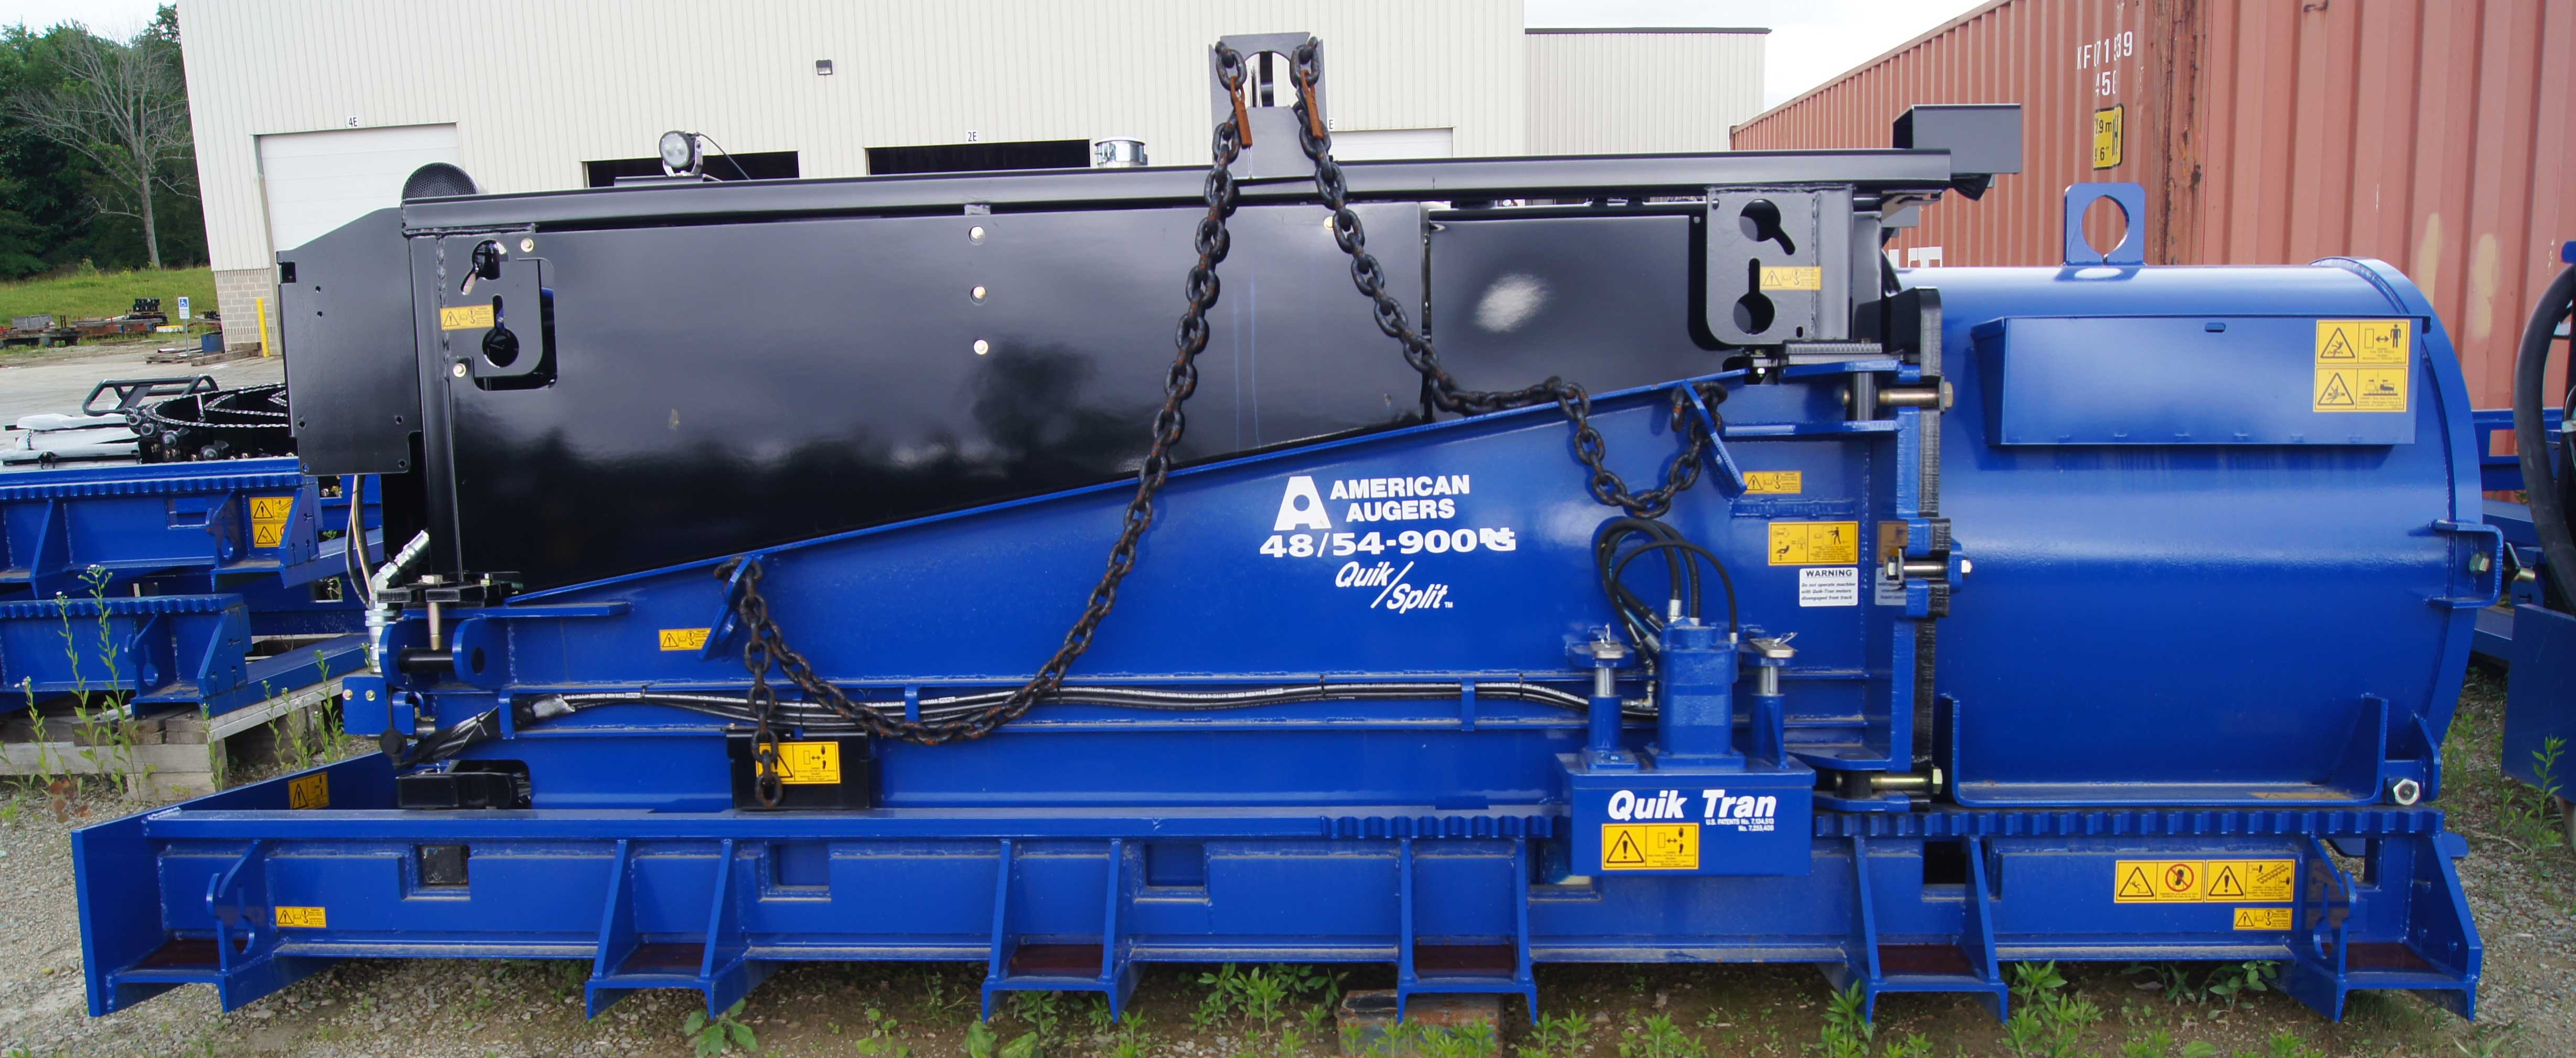 American Augers 48/54-900